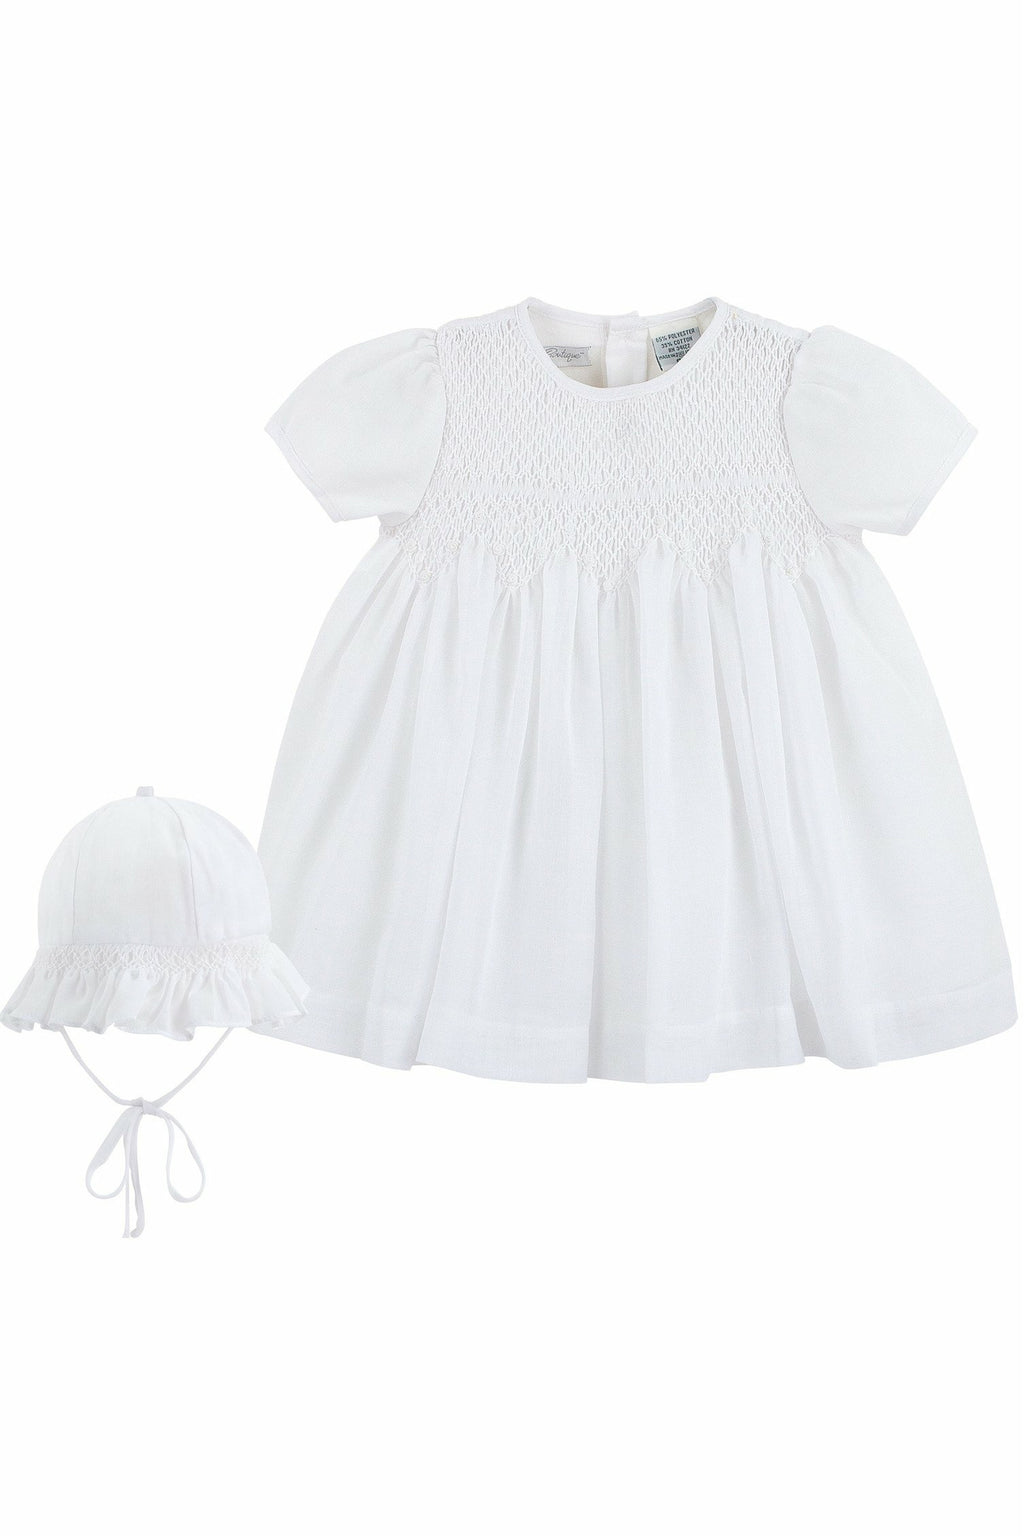 Baby Girl Special Occasion Voile Dress + Bonnet